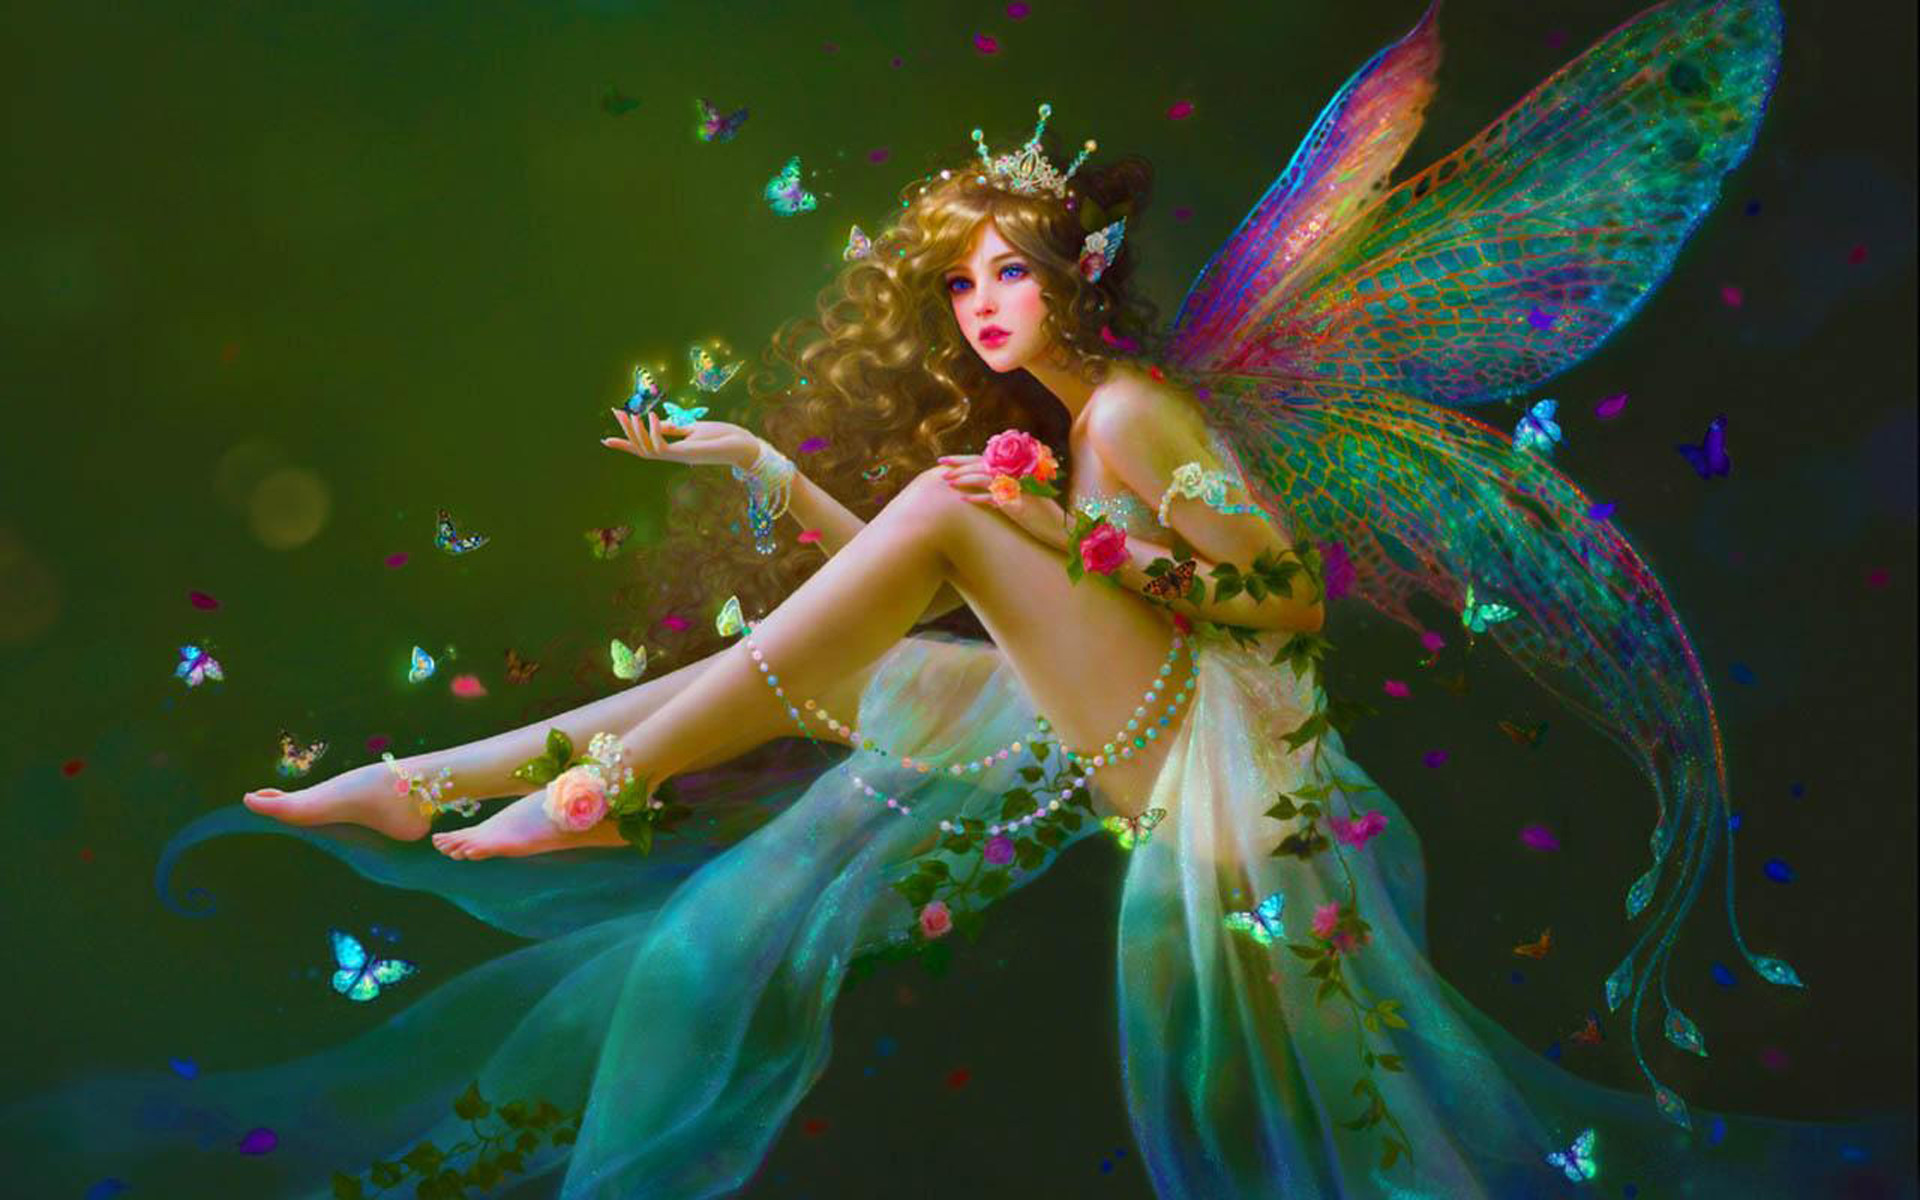 Fantasy Beautiful Girl Wallpaper Beautiful Fairies Wallpapers 183 ①